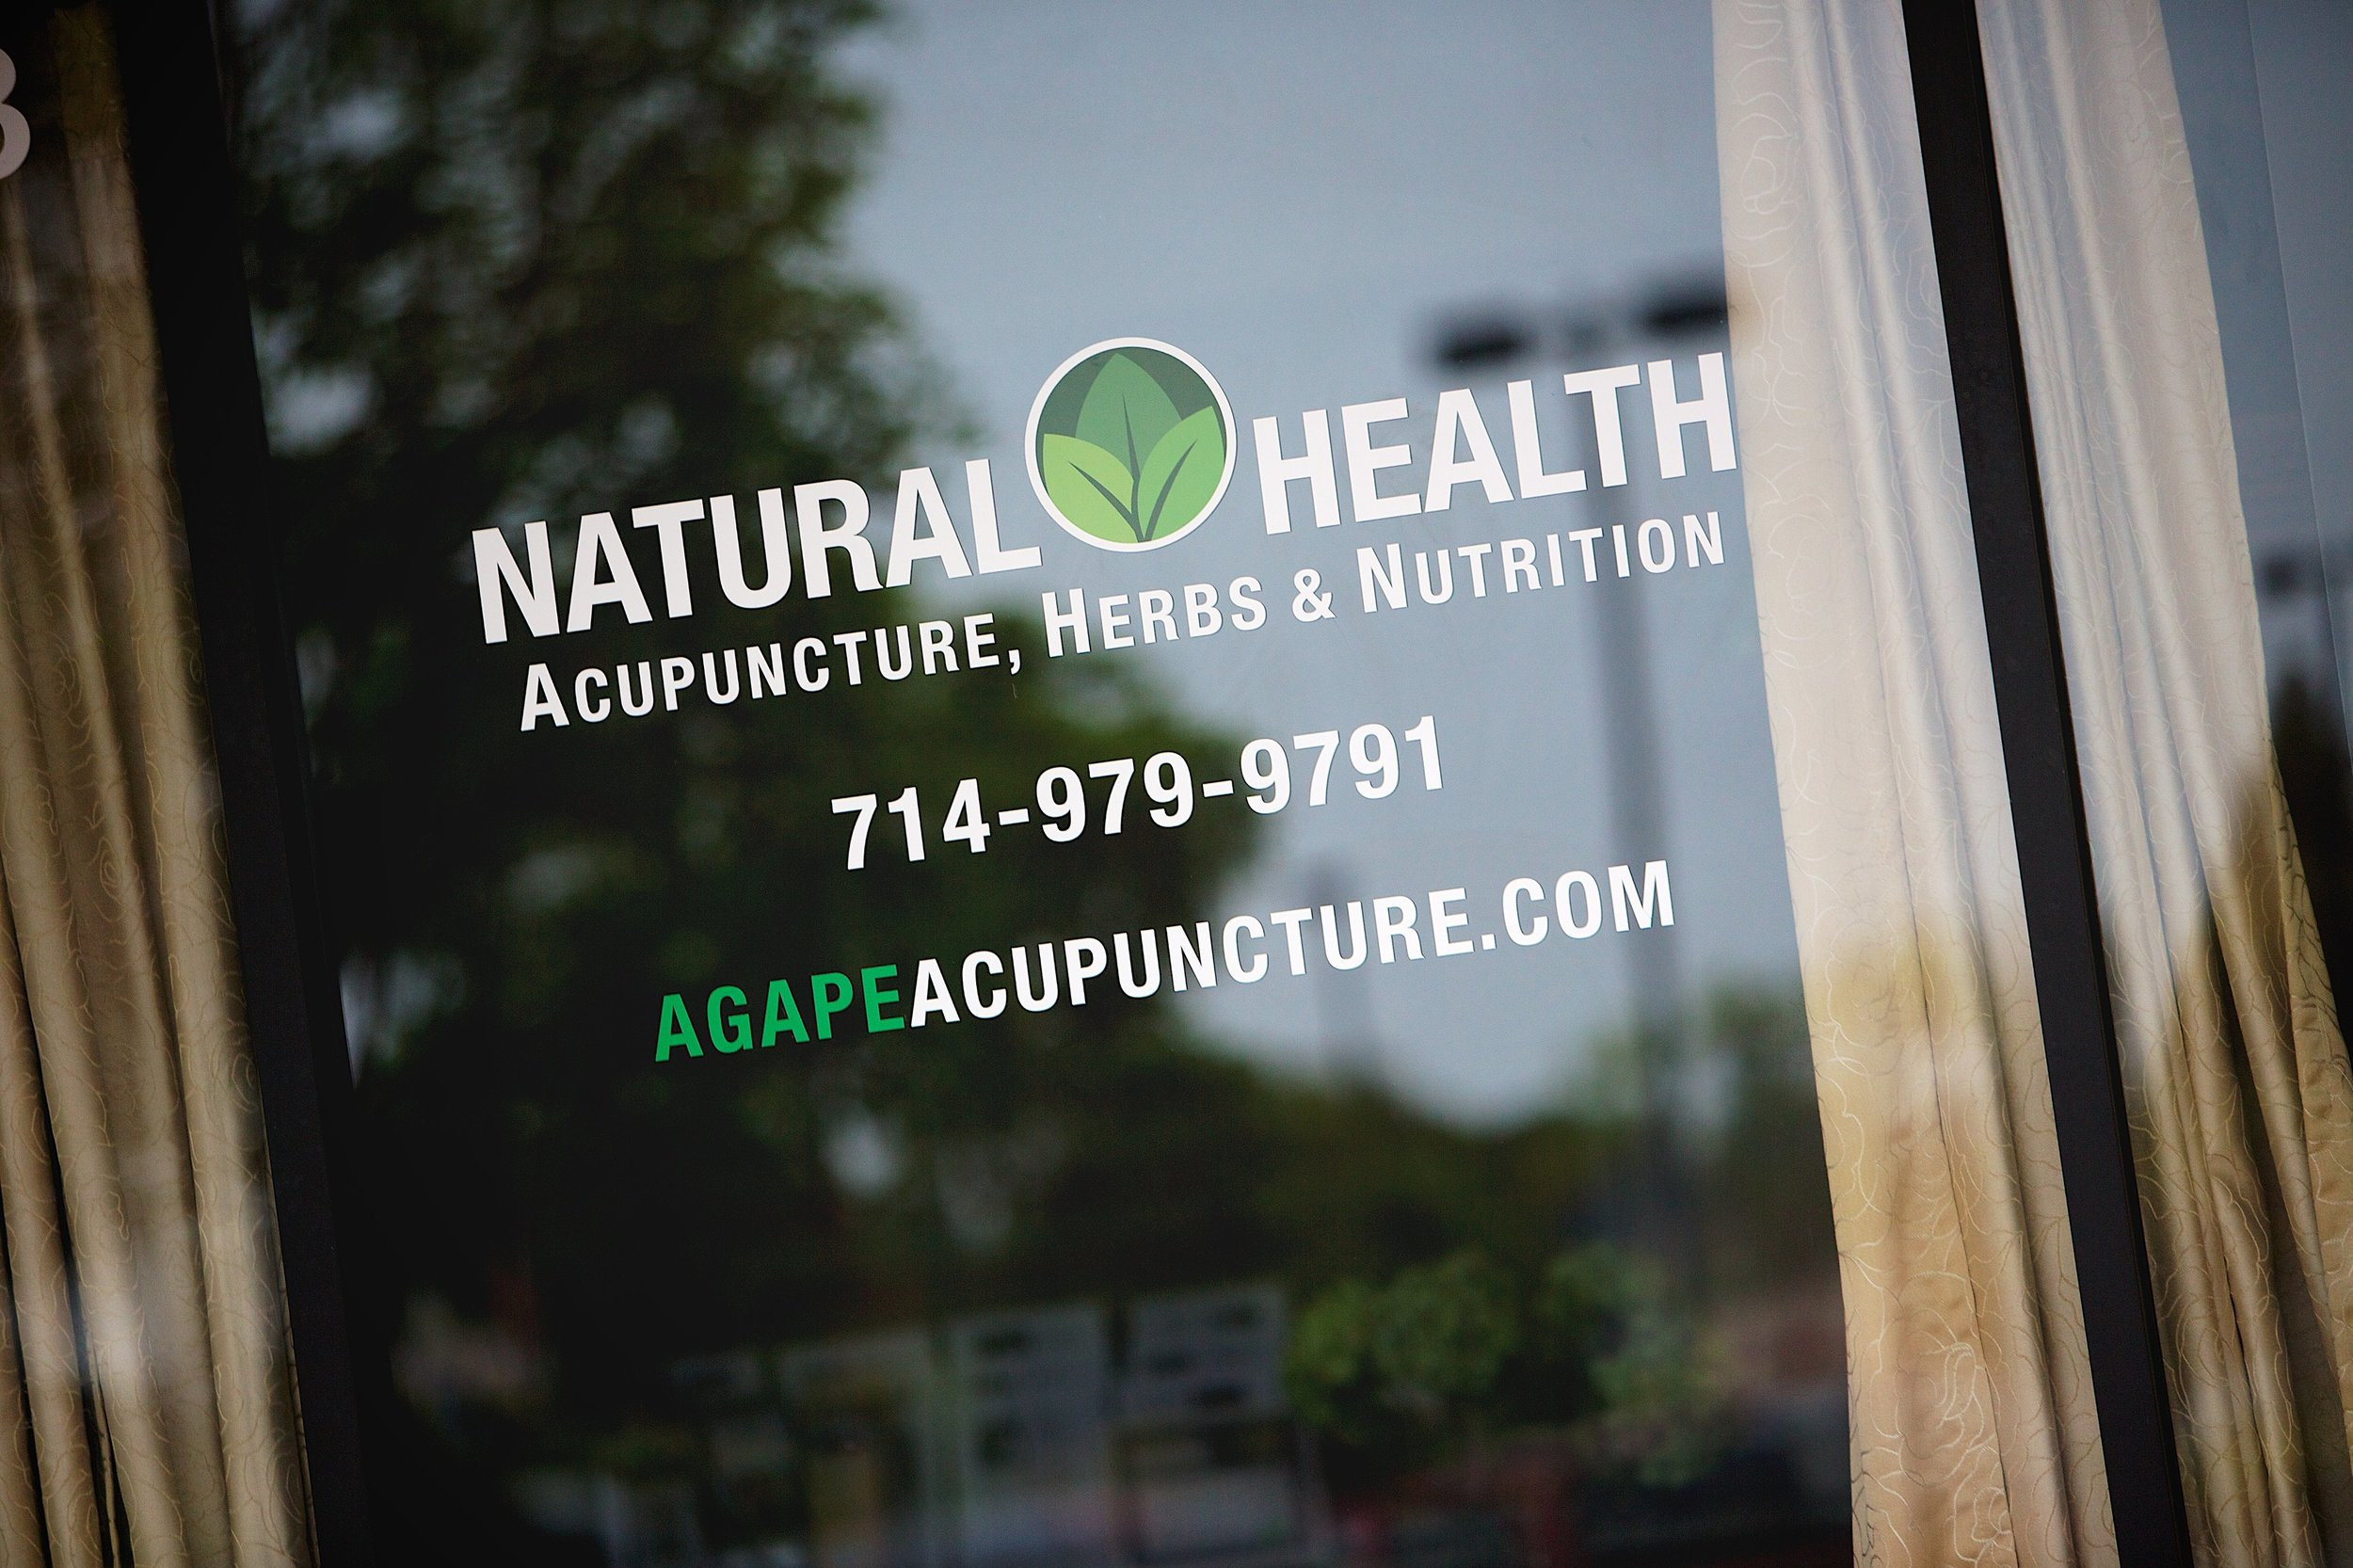 WHAT IS NATURAL MEDICINE?